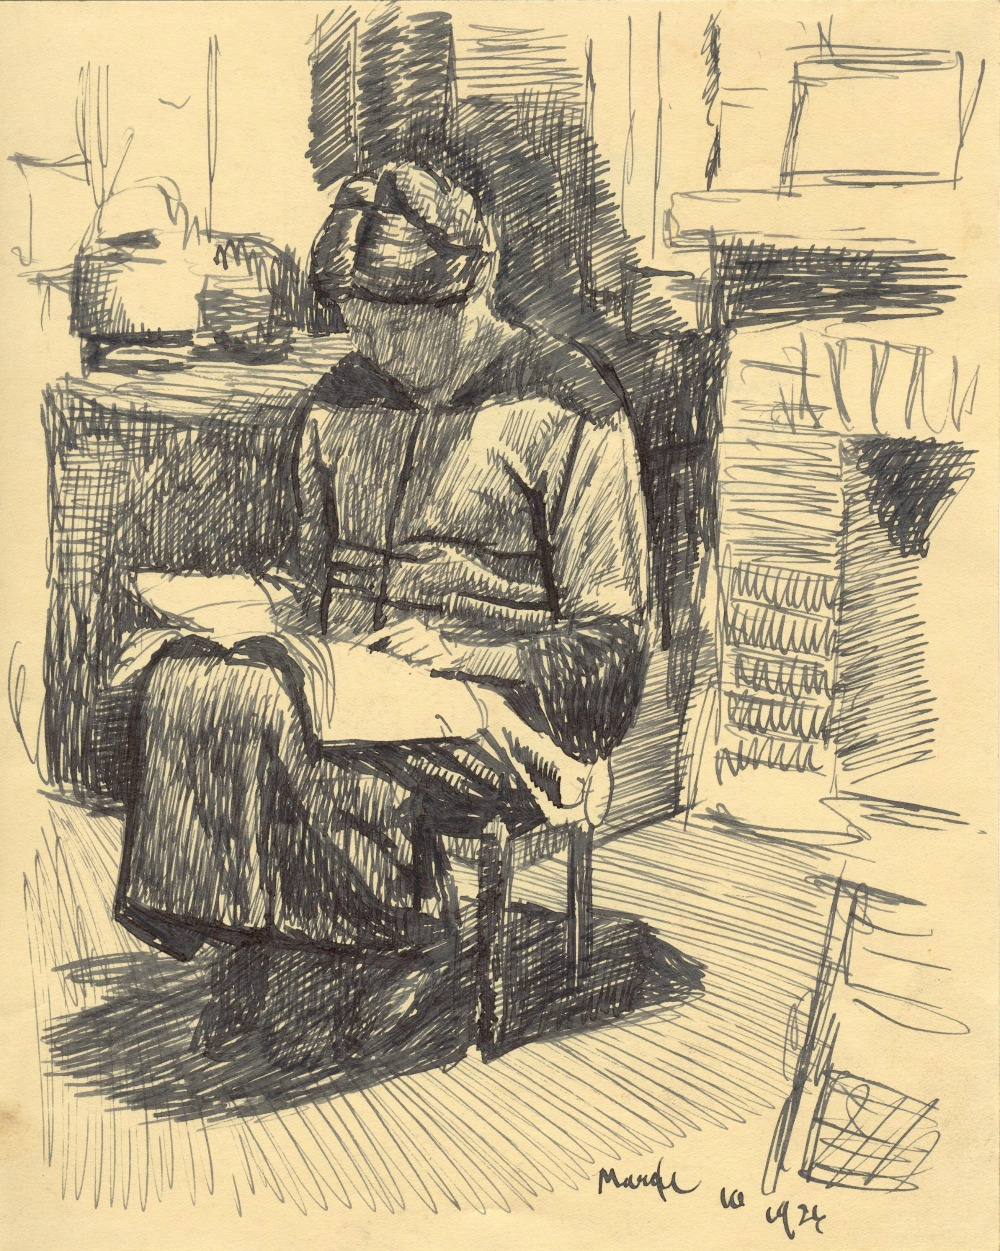 Gertrude Stein in her kitchen, pencil sketch by Carl Schmitt, 1926